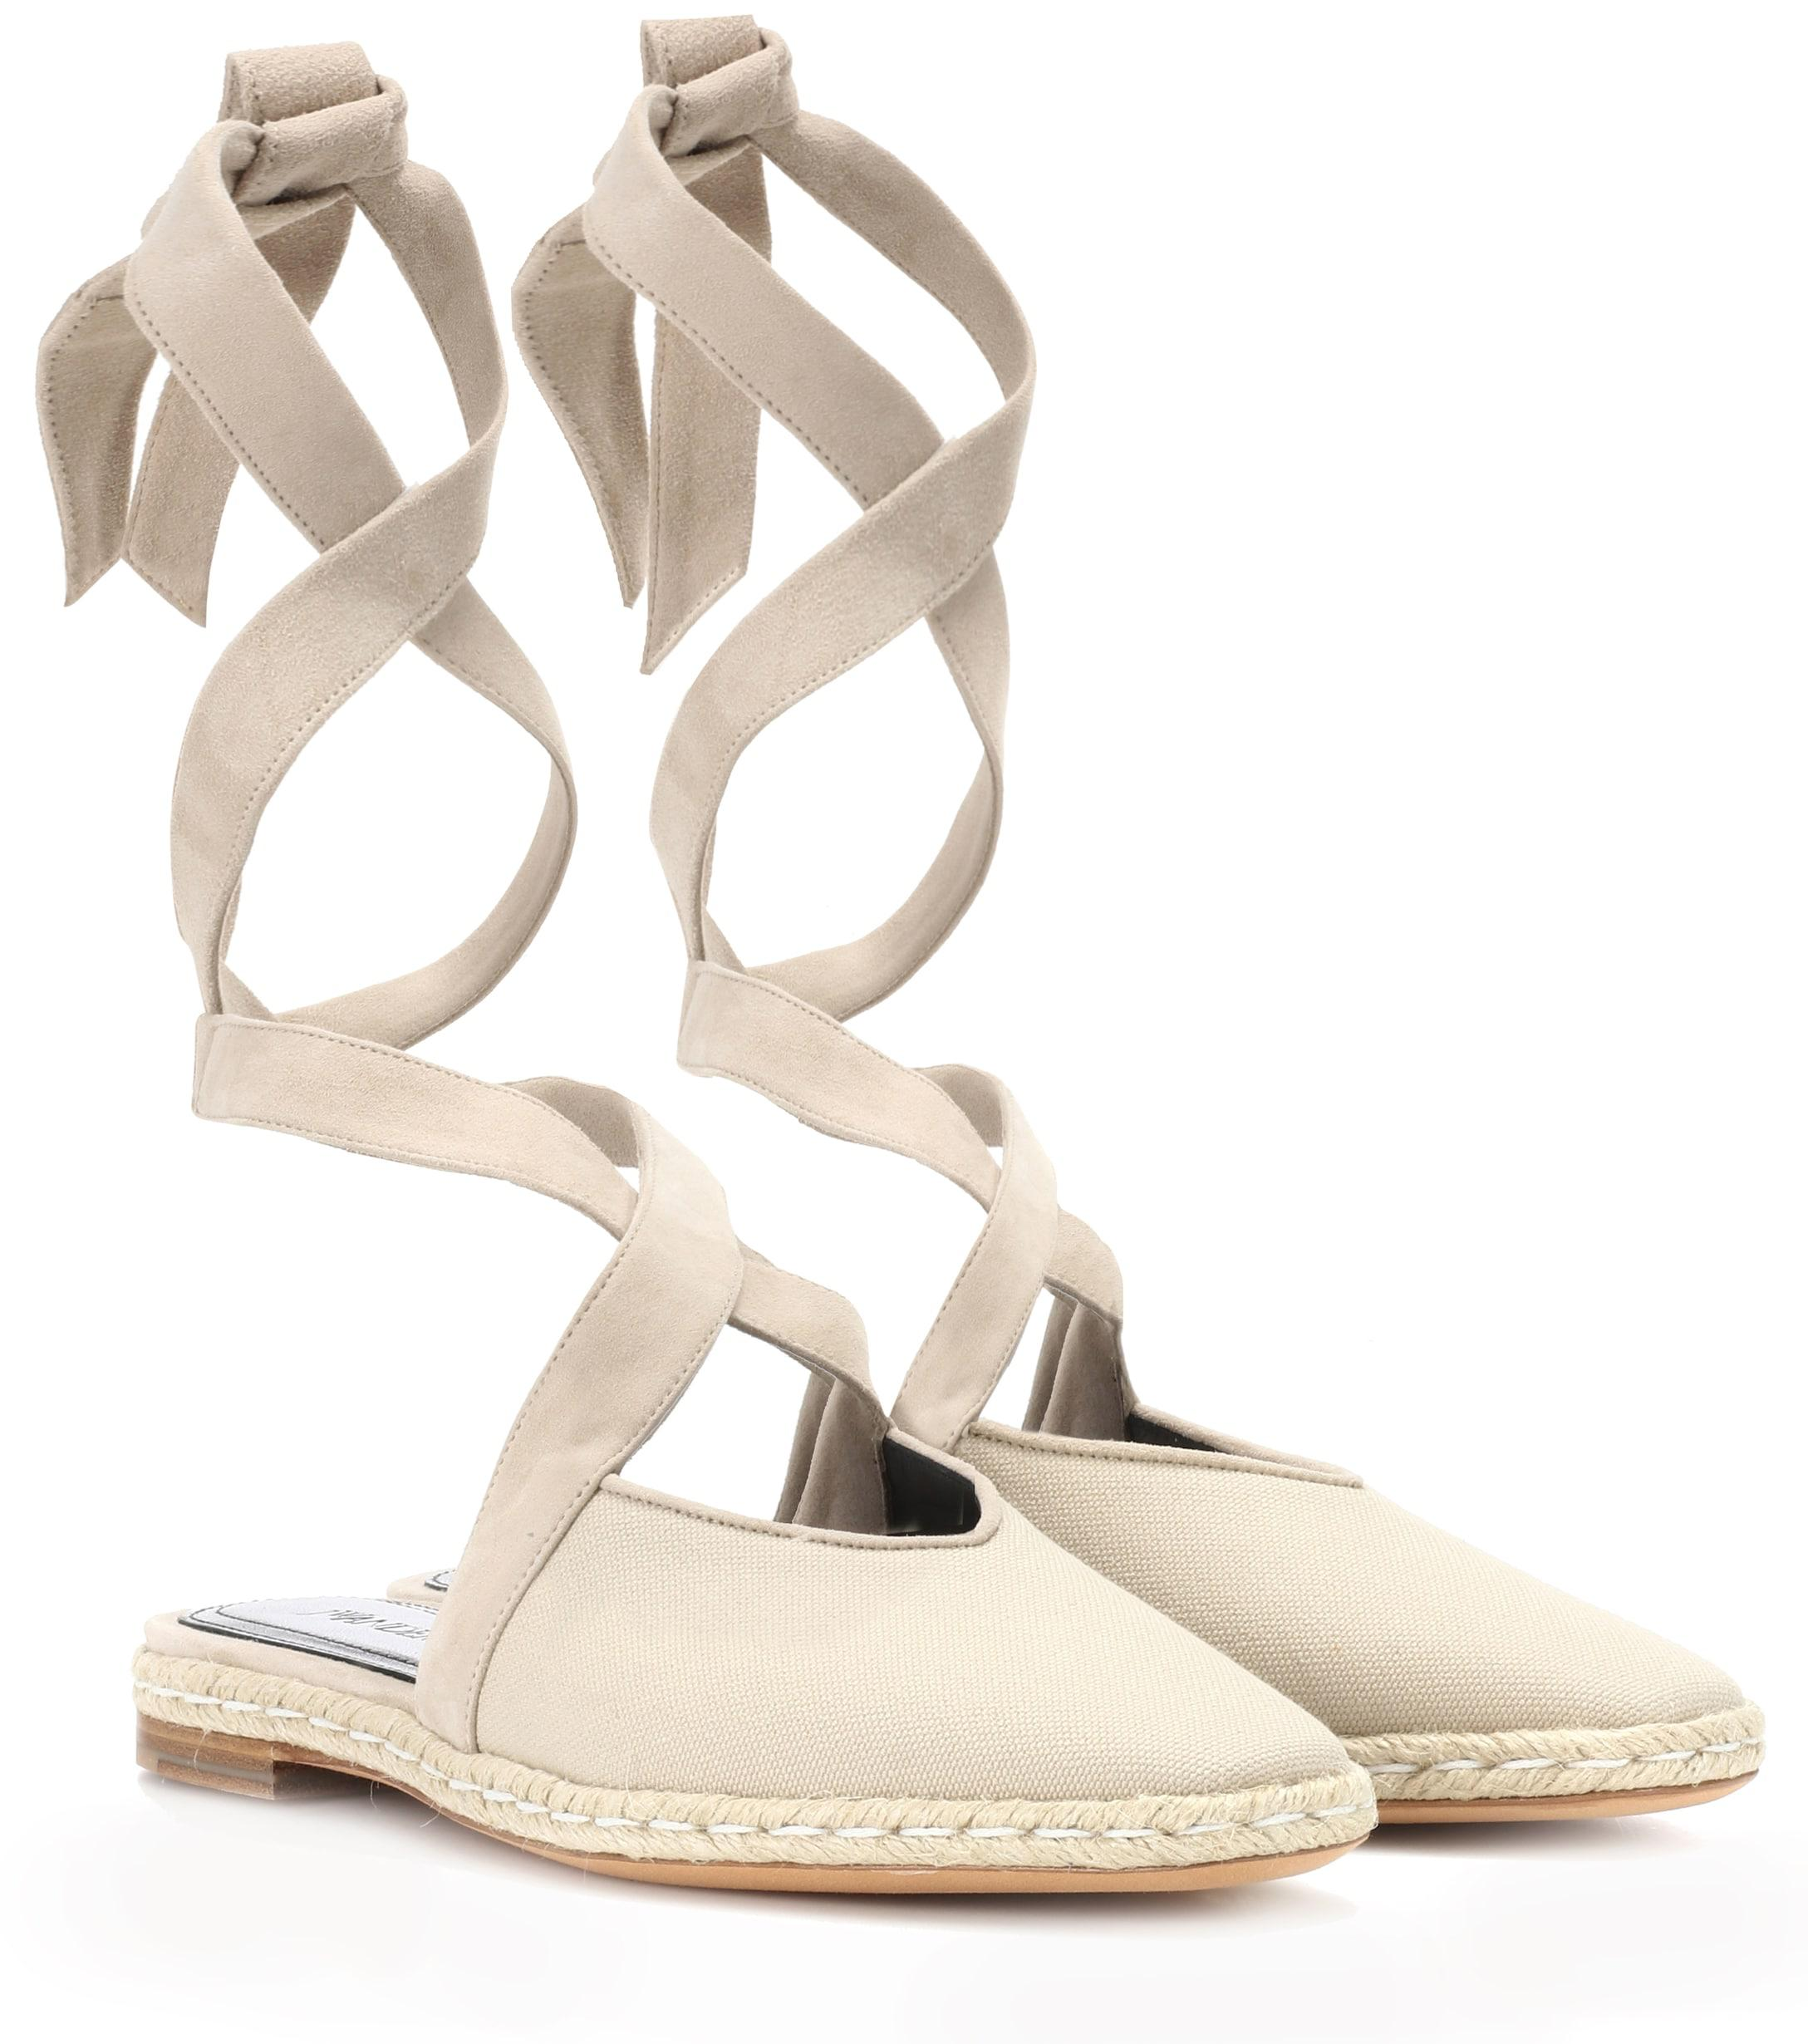 44b79b8ab Lyst - JW Anderson Canvas Lace-up Sandals